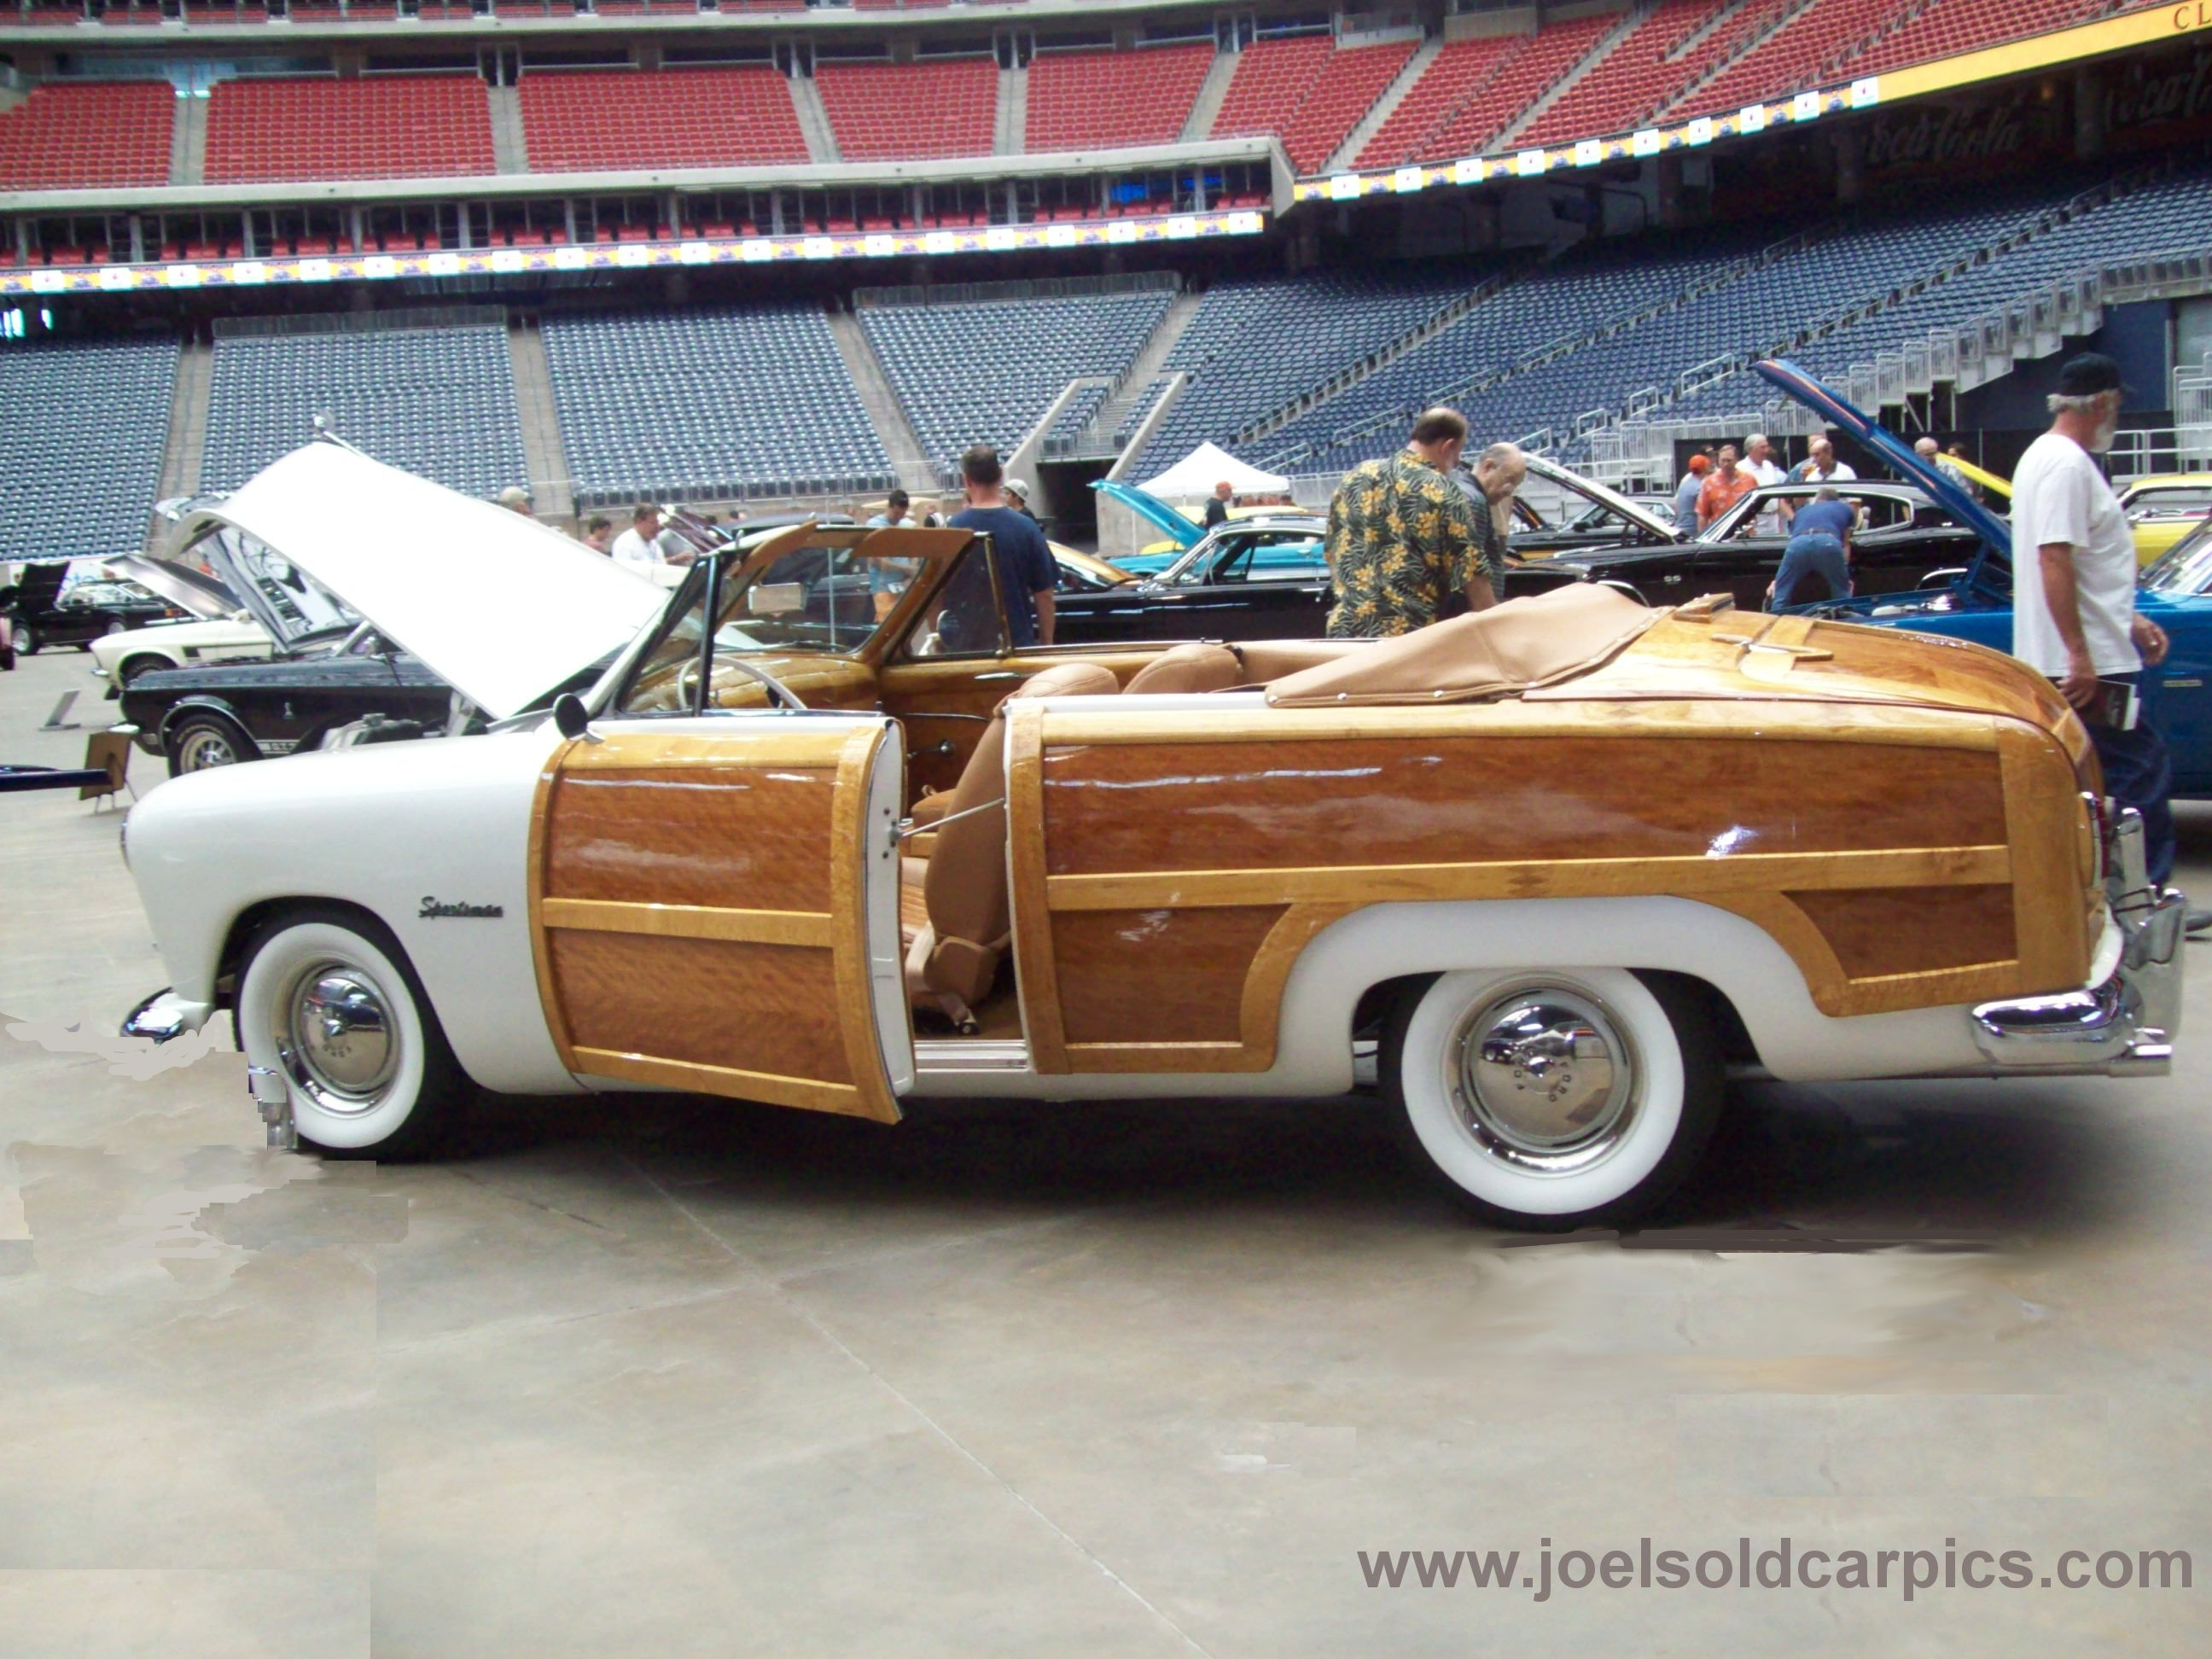 1949 Ford Sportsman Woodie Convertible | Joelu0027s Old Car Pictures & 1949 Ford Sportsman Woodie Convertible | Joelu0027s Old Car Pictures ... markmcfarlin.com